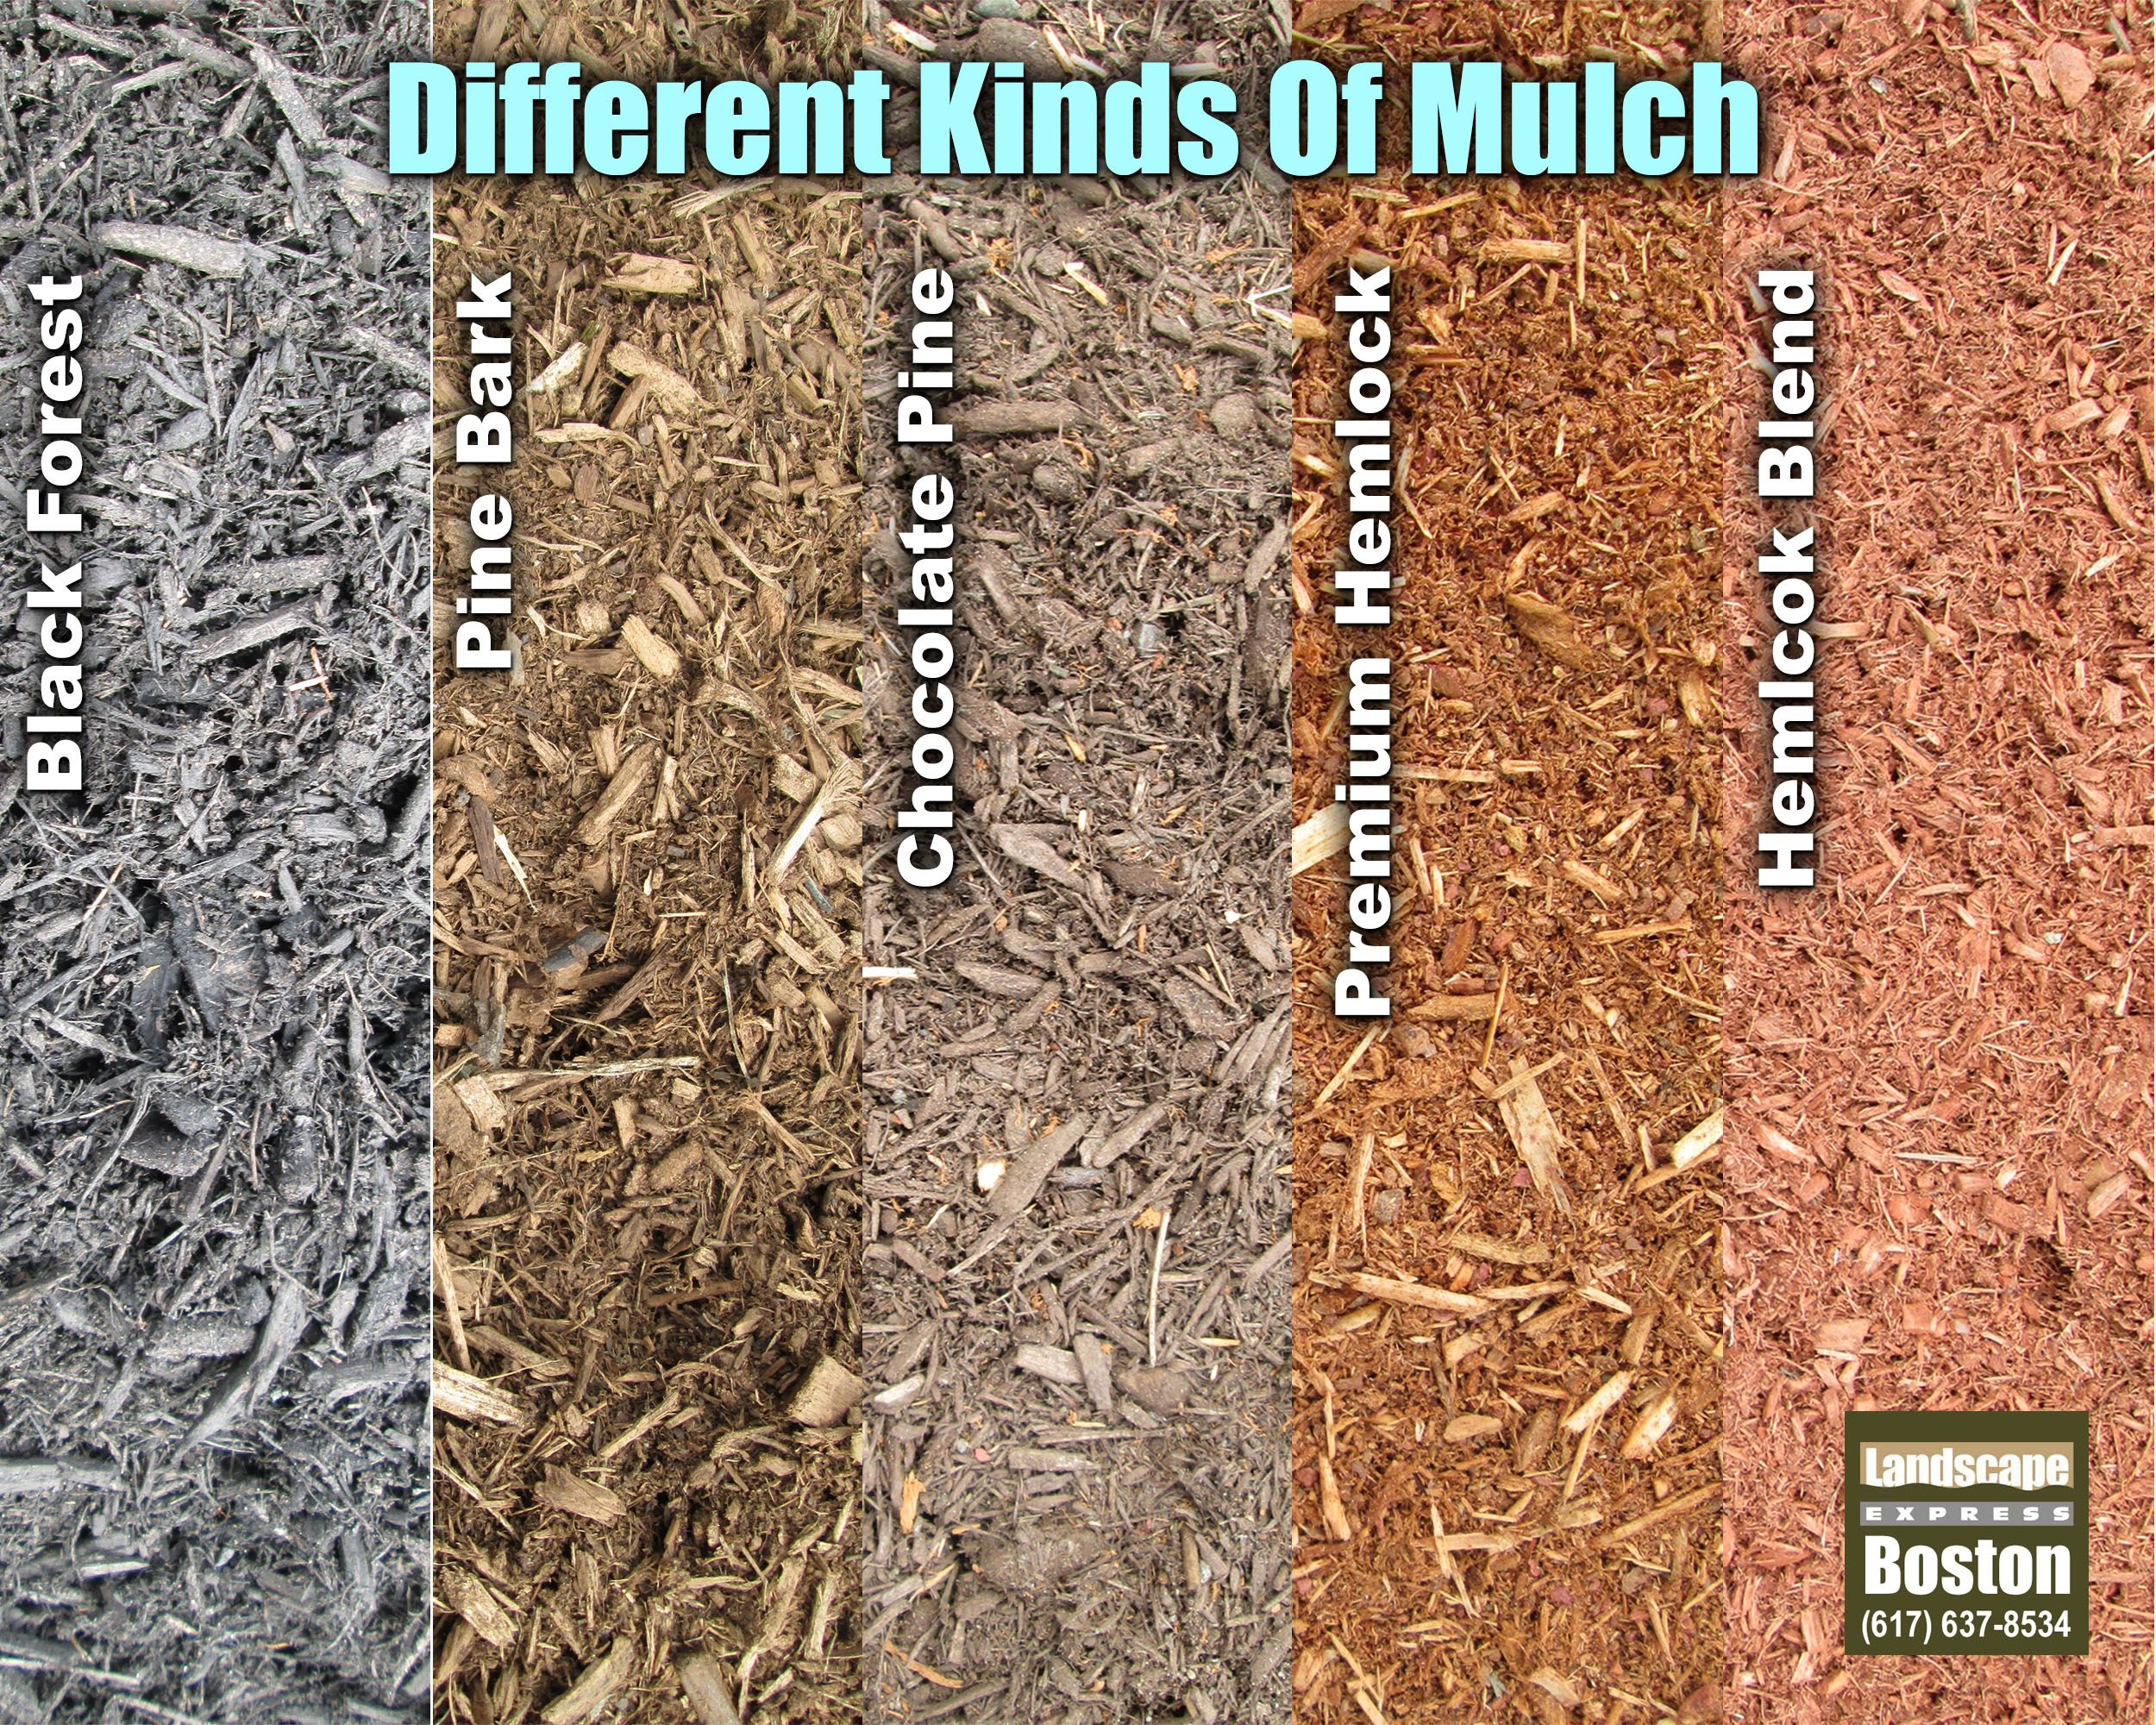 Http Bostonlandscapesupply Com Mulch Php 617 637 8534 Our